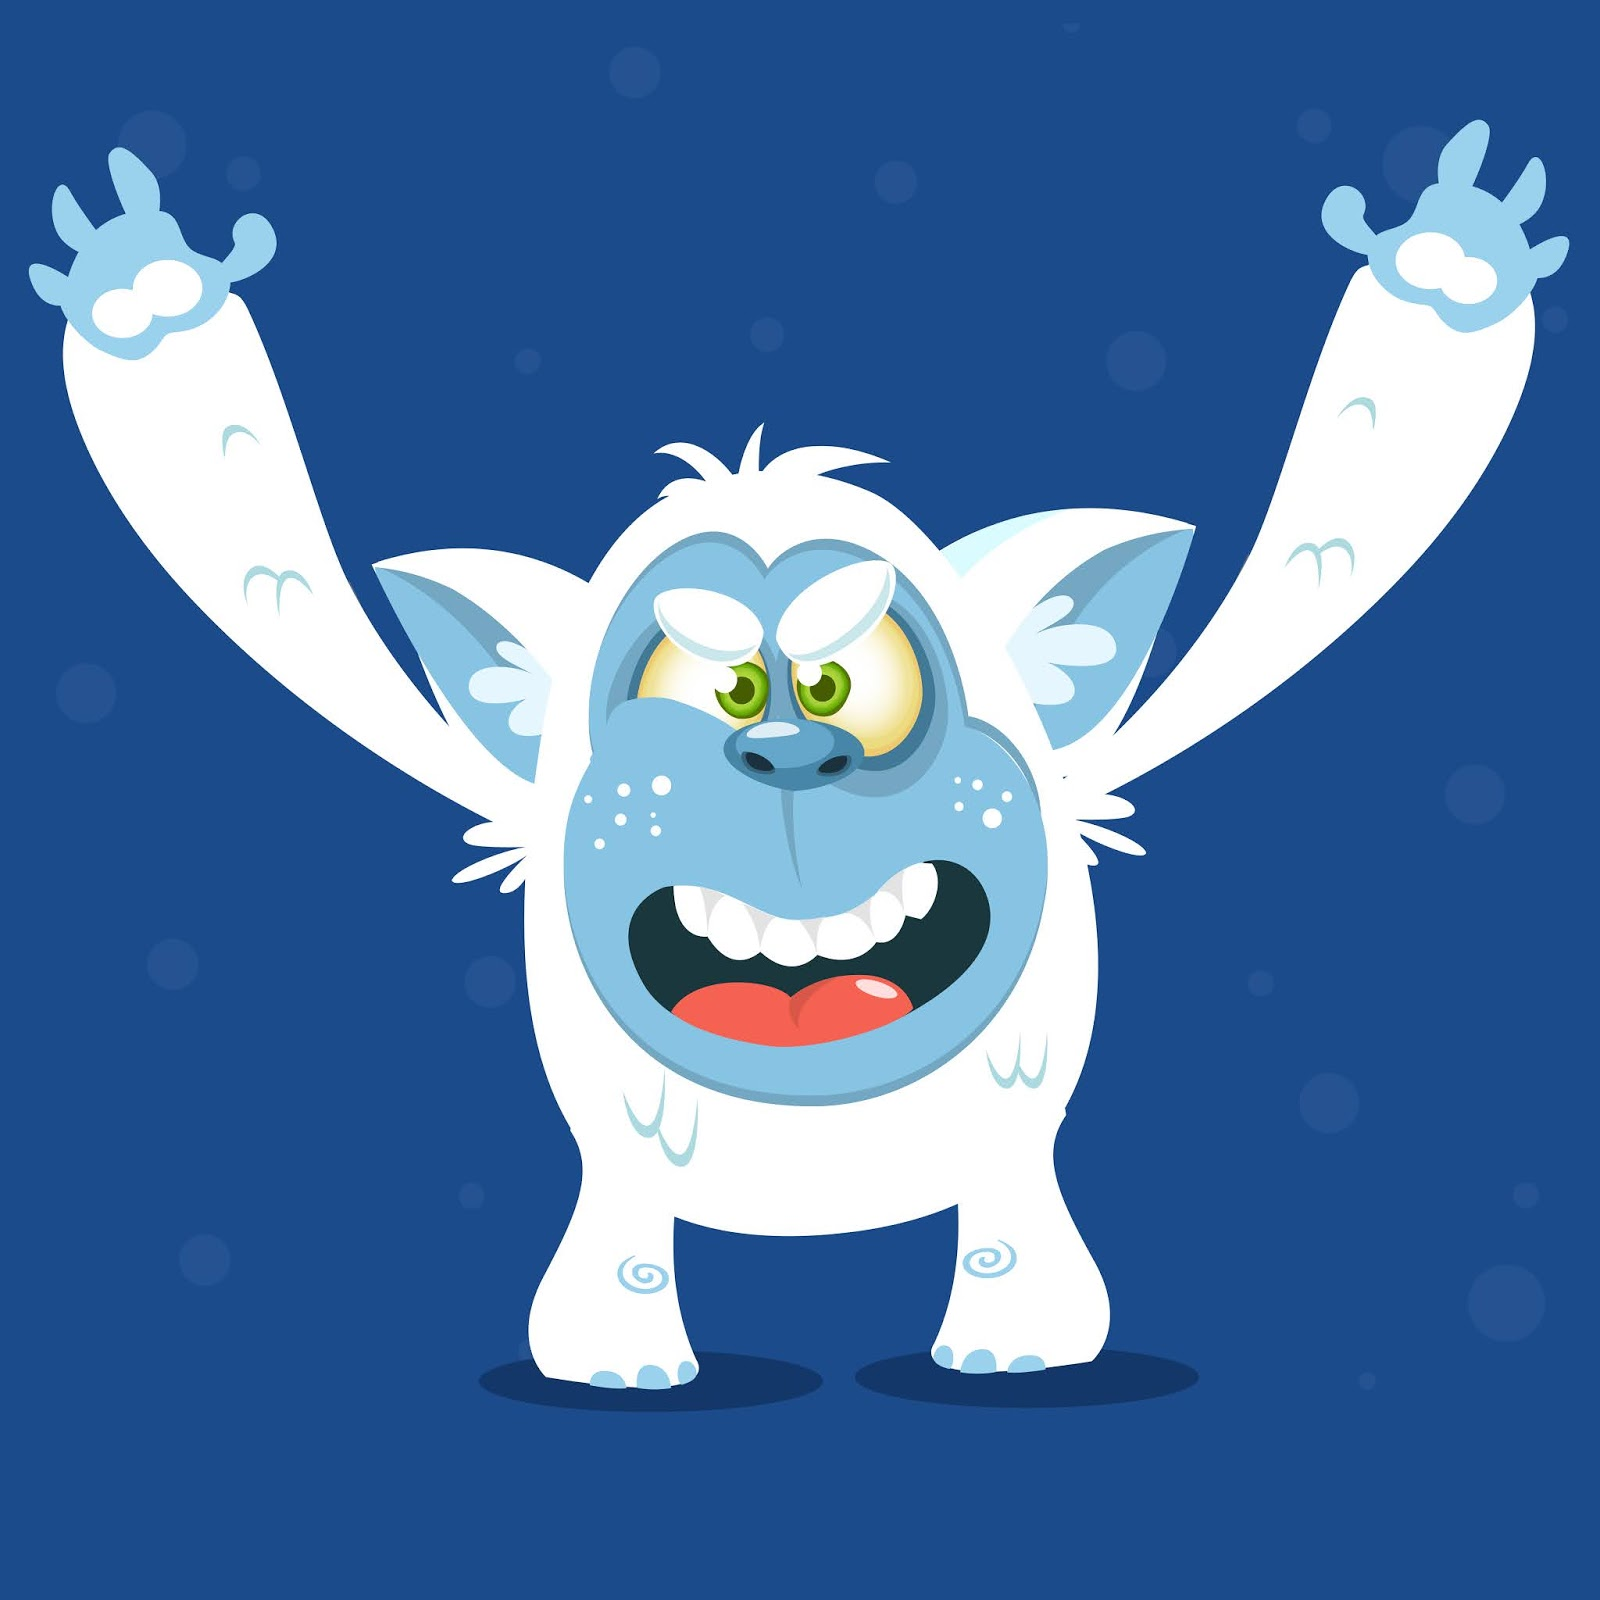 Cartoon Funny Monster Funny Free Download Vector CDR, AI, EPS and PNG Formats